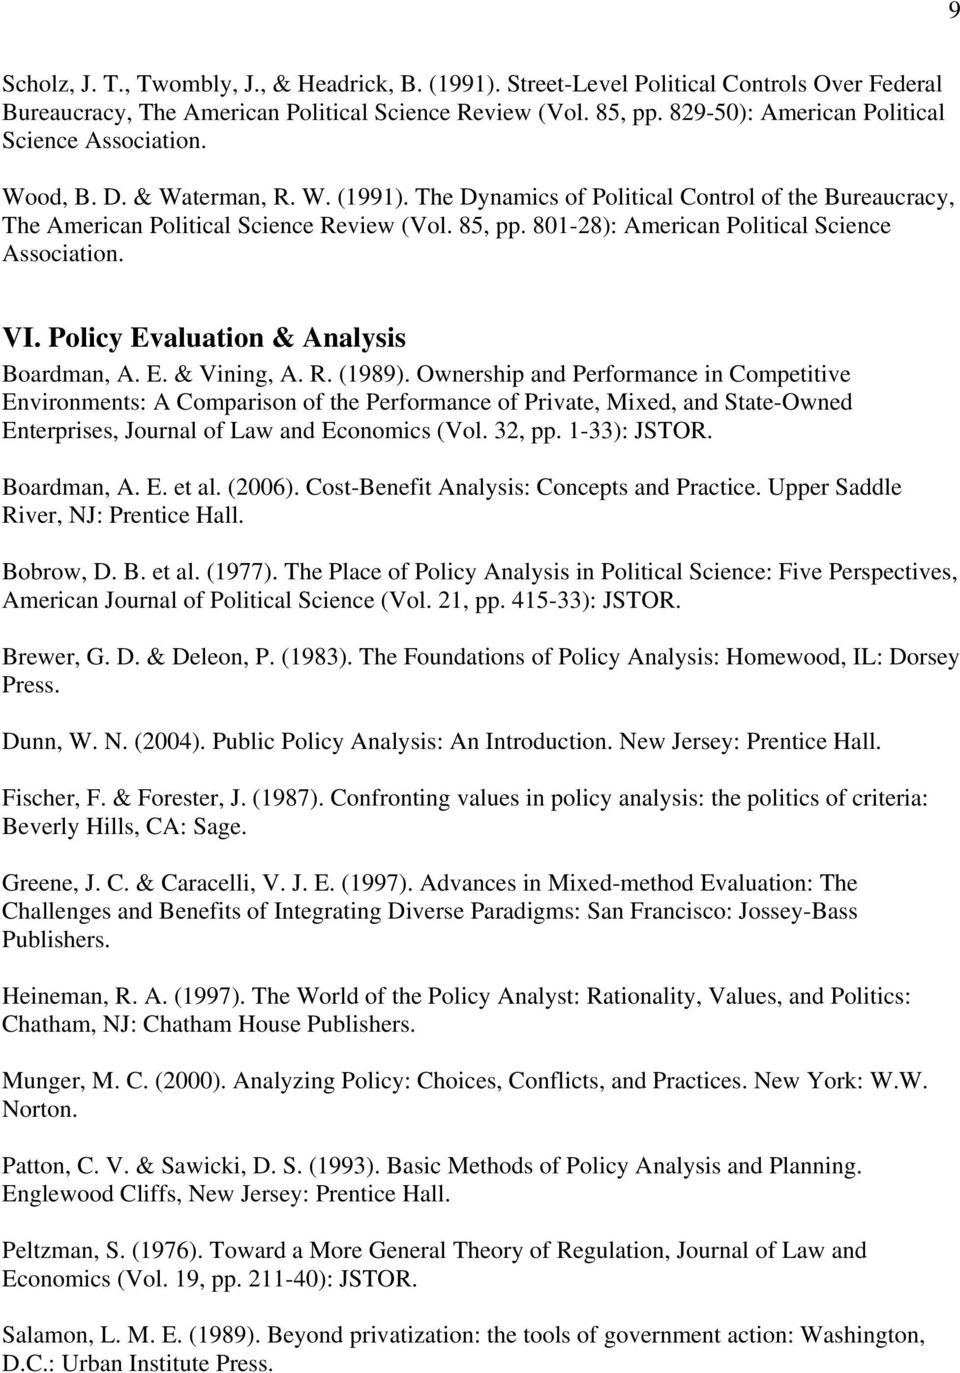 801-28): American Political Science Association. VI. Policy Evaluation & Analysis Boardman, A. E. & Vining, A. R. (1989).